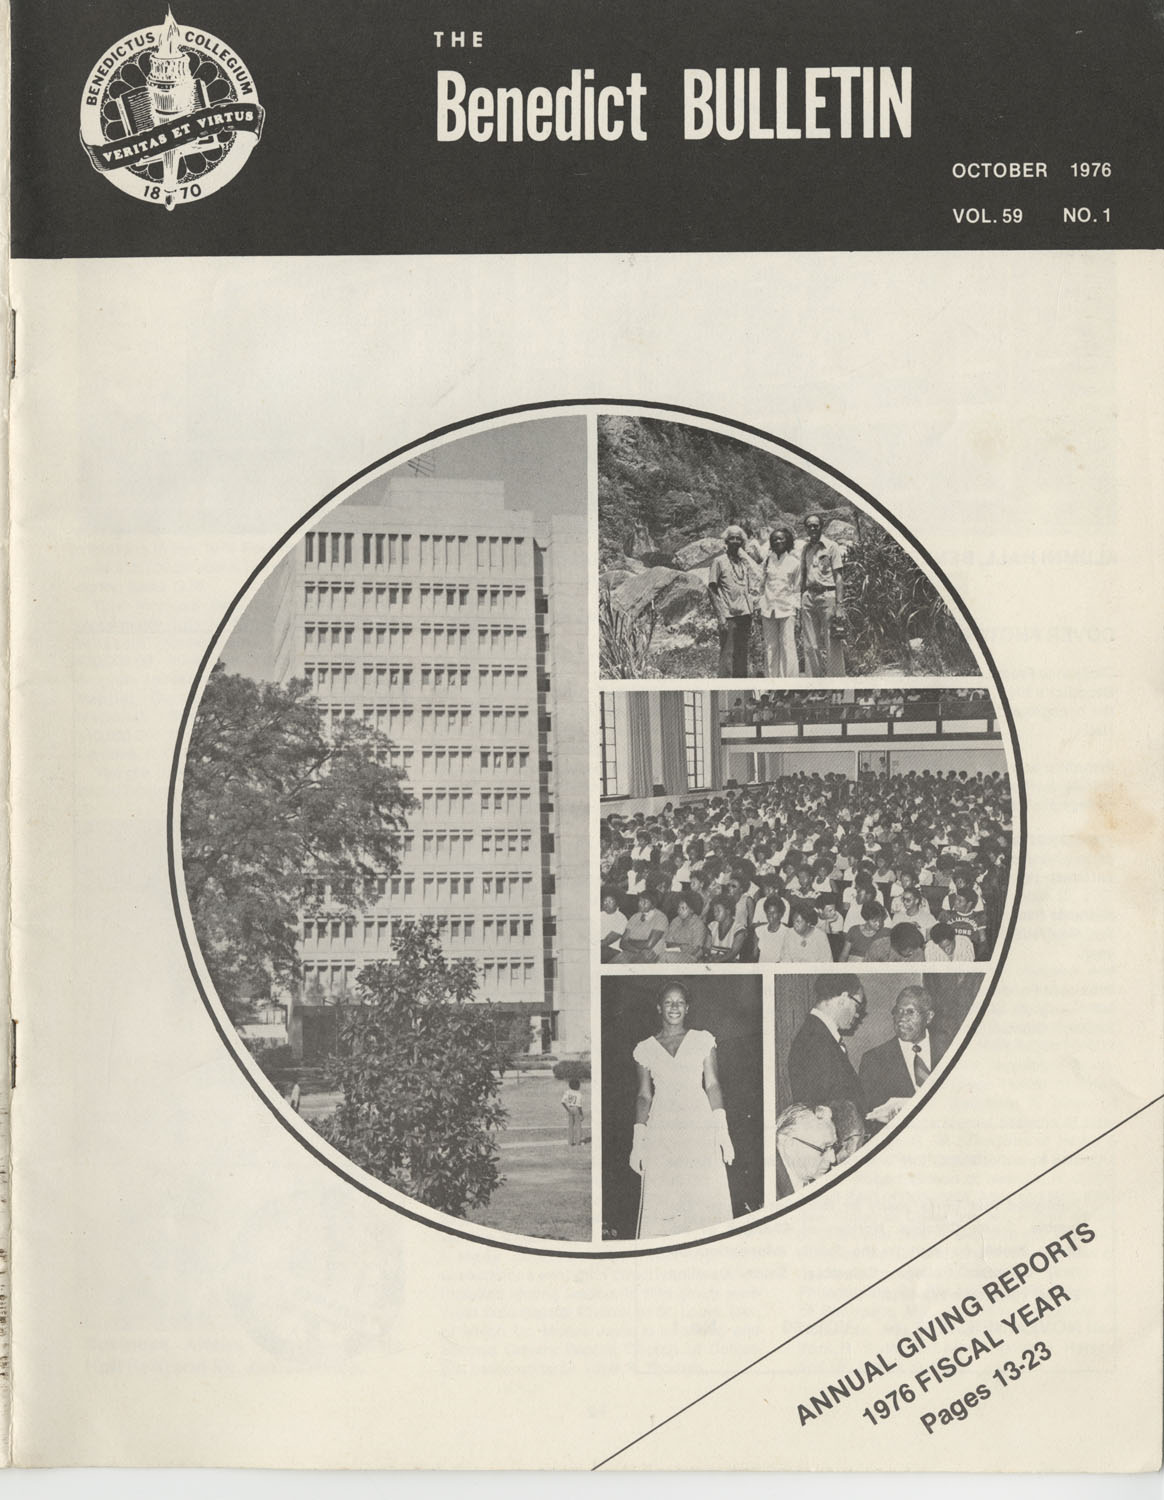 The Benedict Bulletin, October 1976, Front Cover